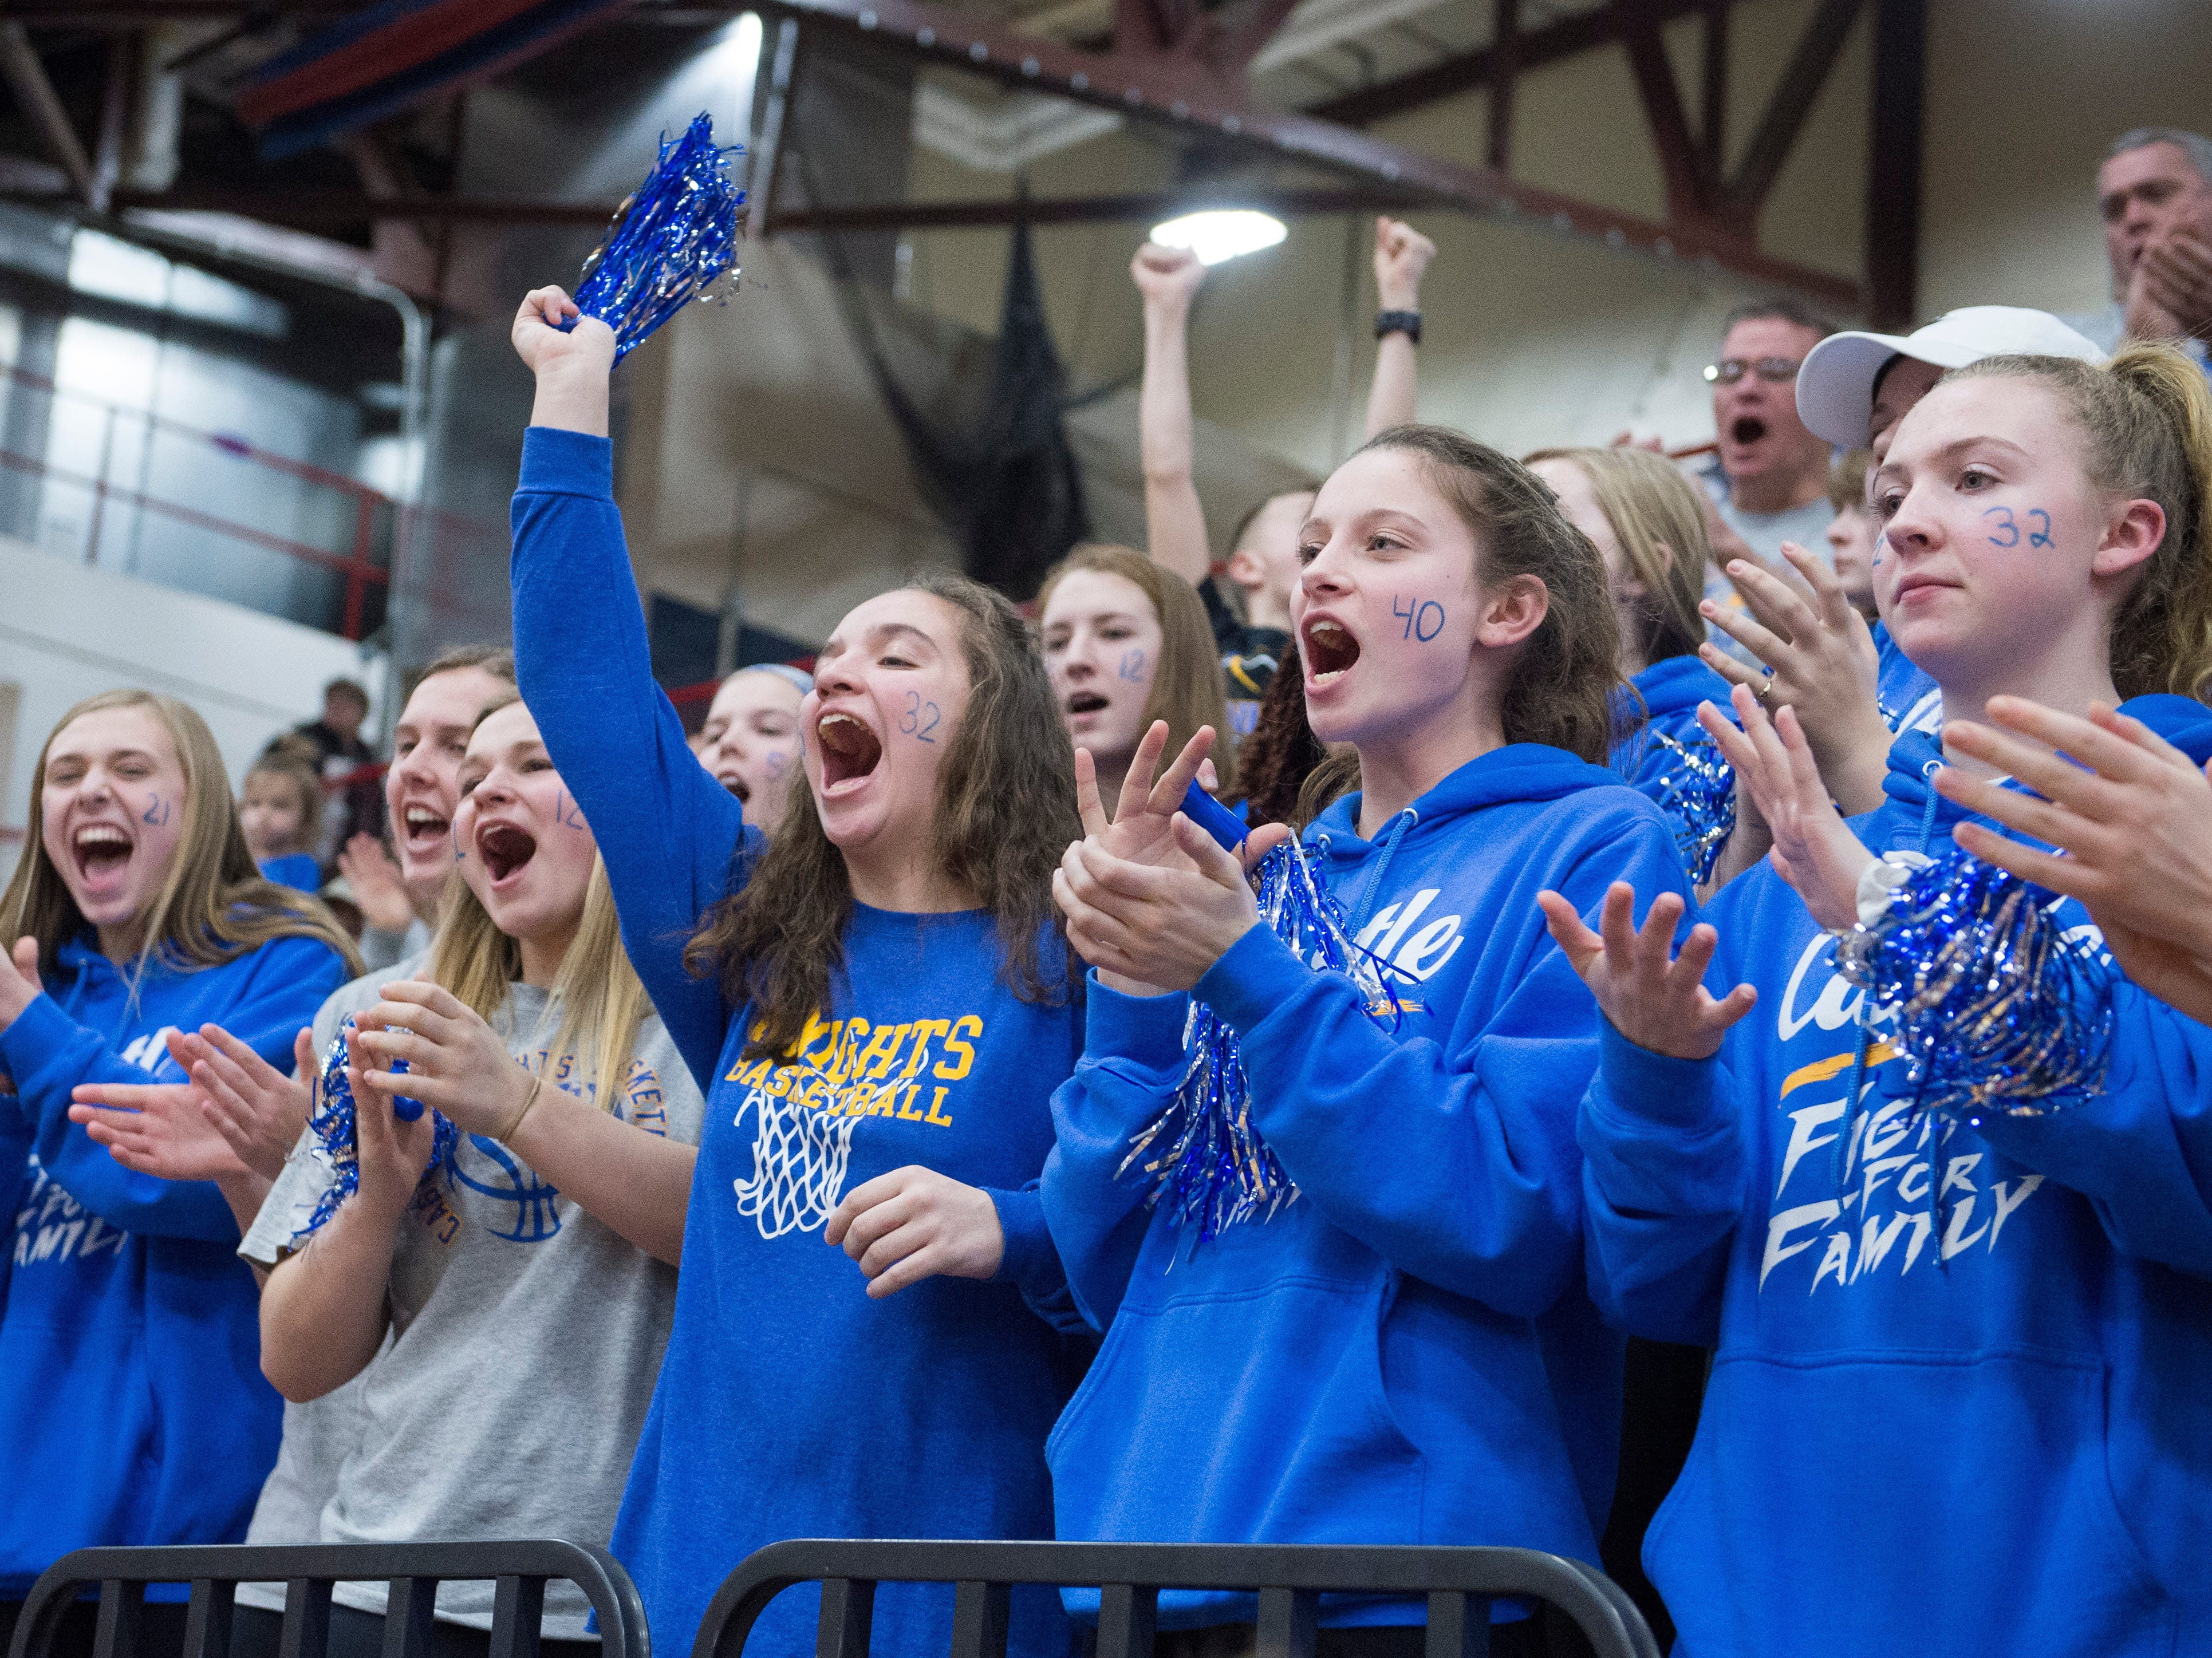 The Castle JV basketball team cheers on the varsity team as they take on the Bedford North Lawrence Lady Stars during the  IHSAA Girls Basketball Class 4A Regional Championship game at the Stars Field House in Bedford, Ind. Saturday, Feb. 9, 2019.